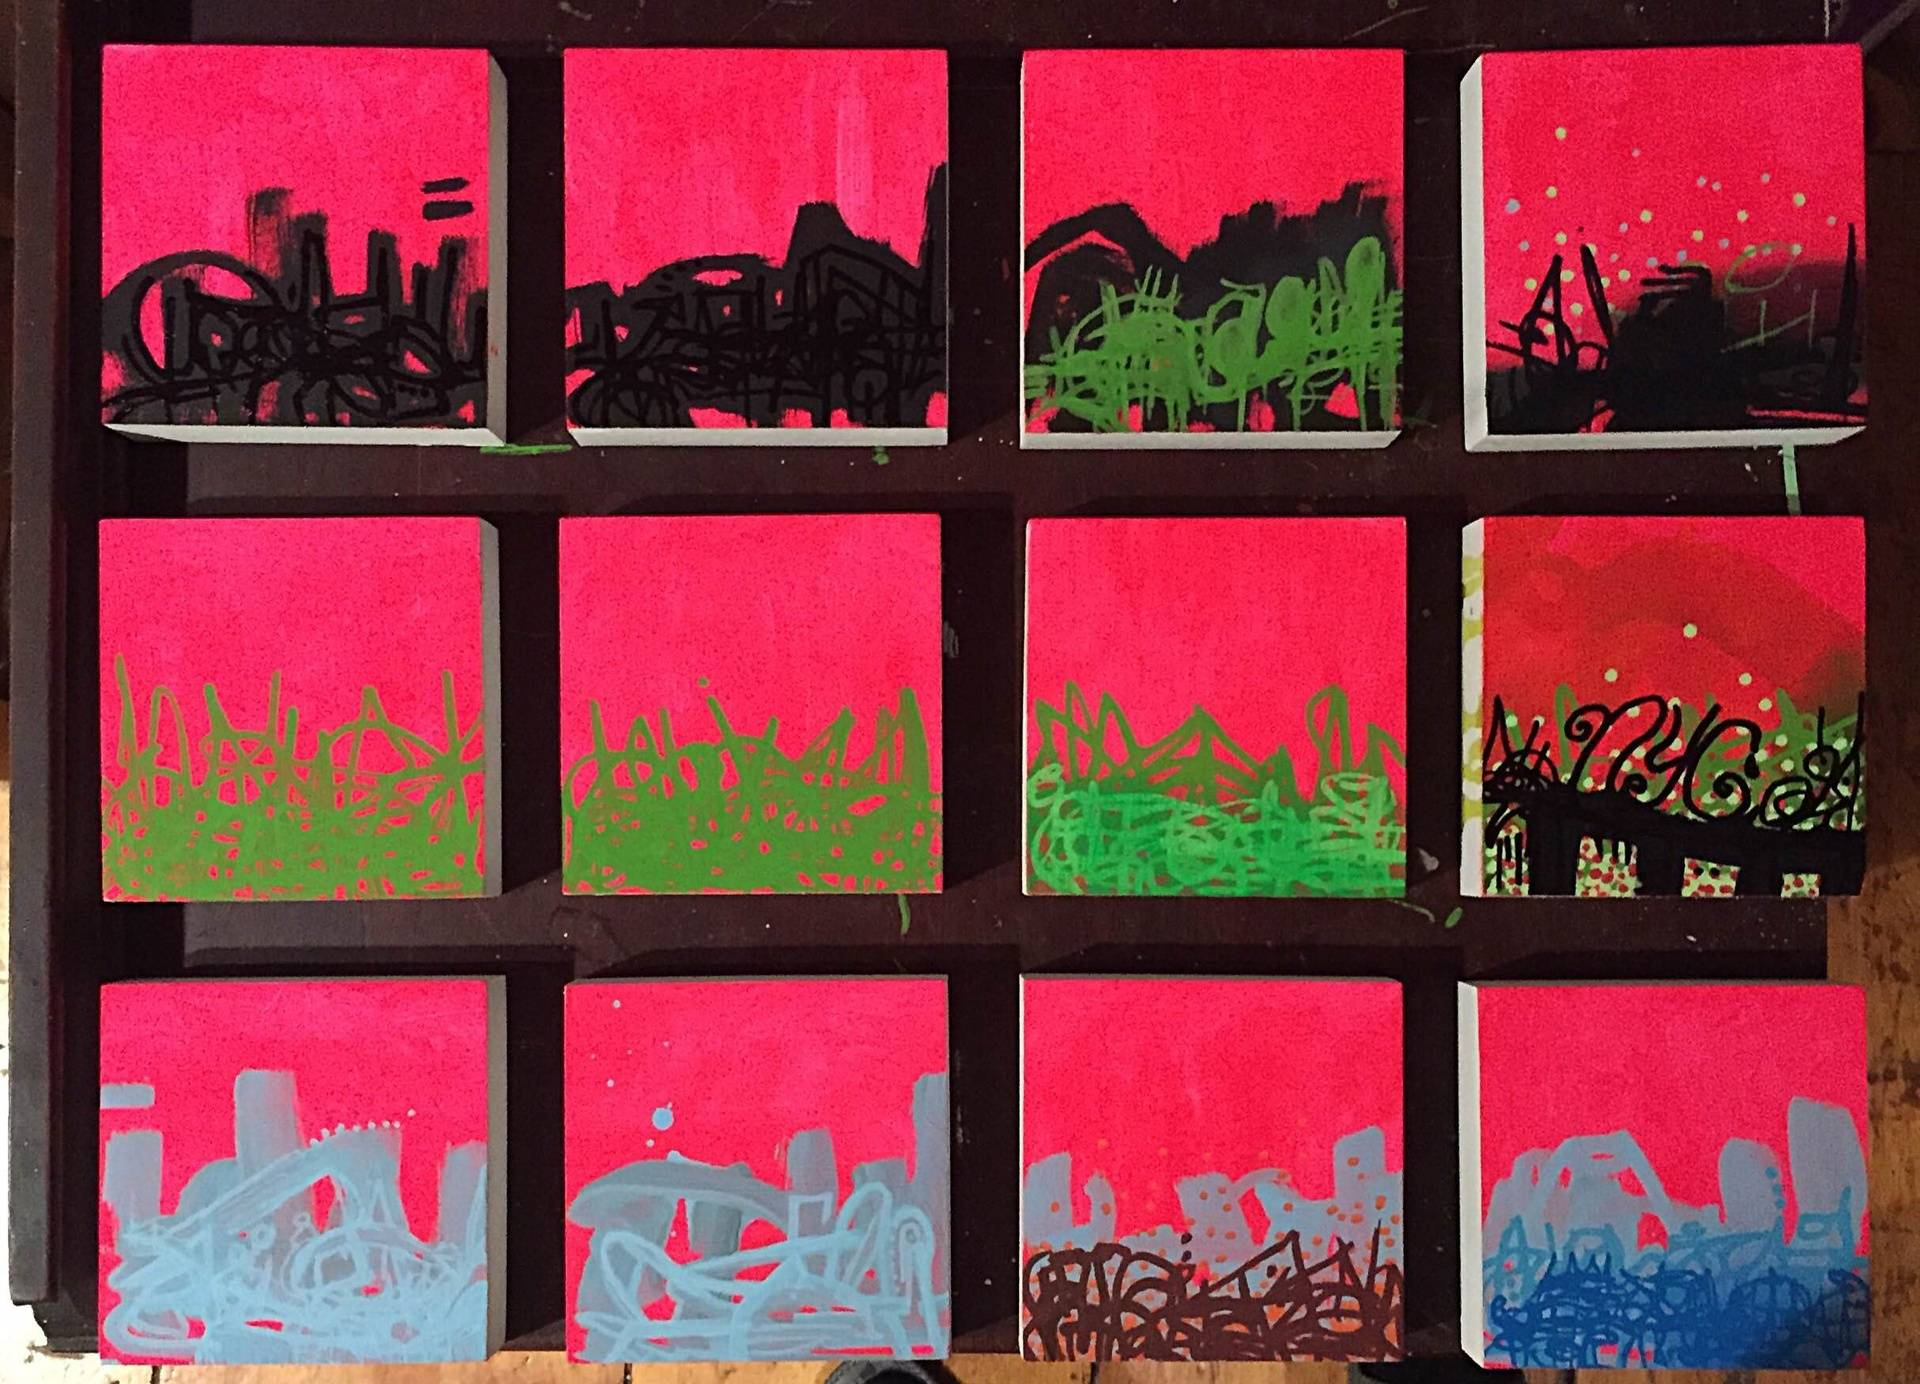 These are little pinky #4-15. They are 4x4 inches and going for $50 each. Three of them are available at the @popupgallerynyc show and the remaining 9 will be available at my studio during Bushwick Open Studios.